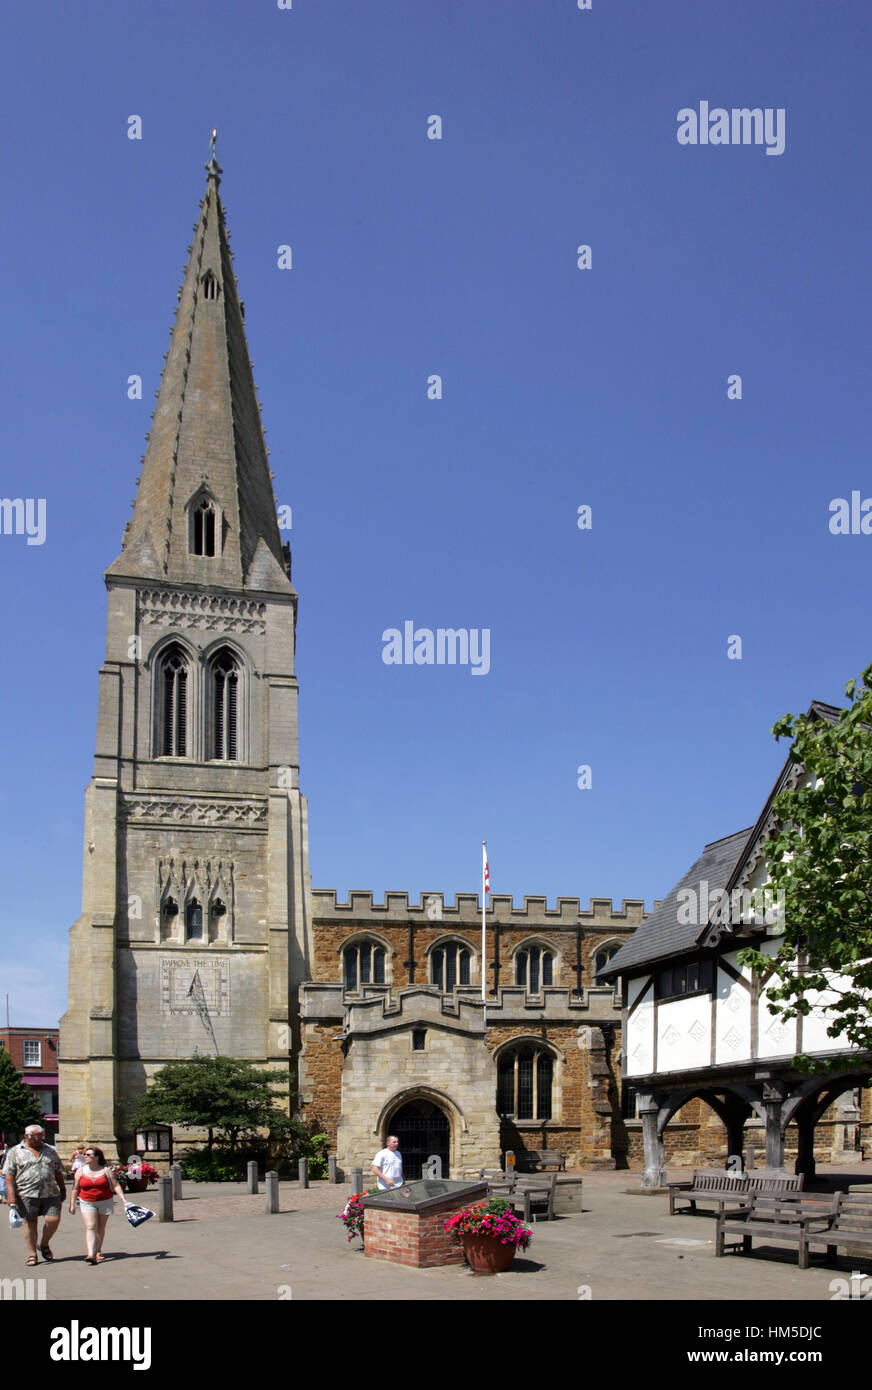 Saint Dionysius church and (R) the Old Grammar School, Market Harborough, Leicestershire - Stock Image